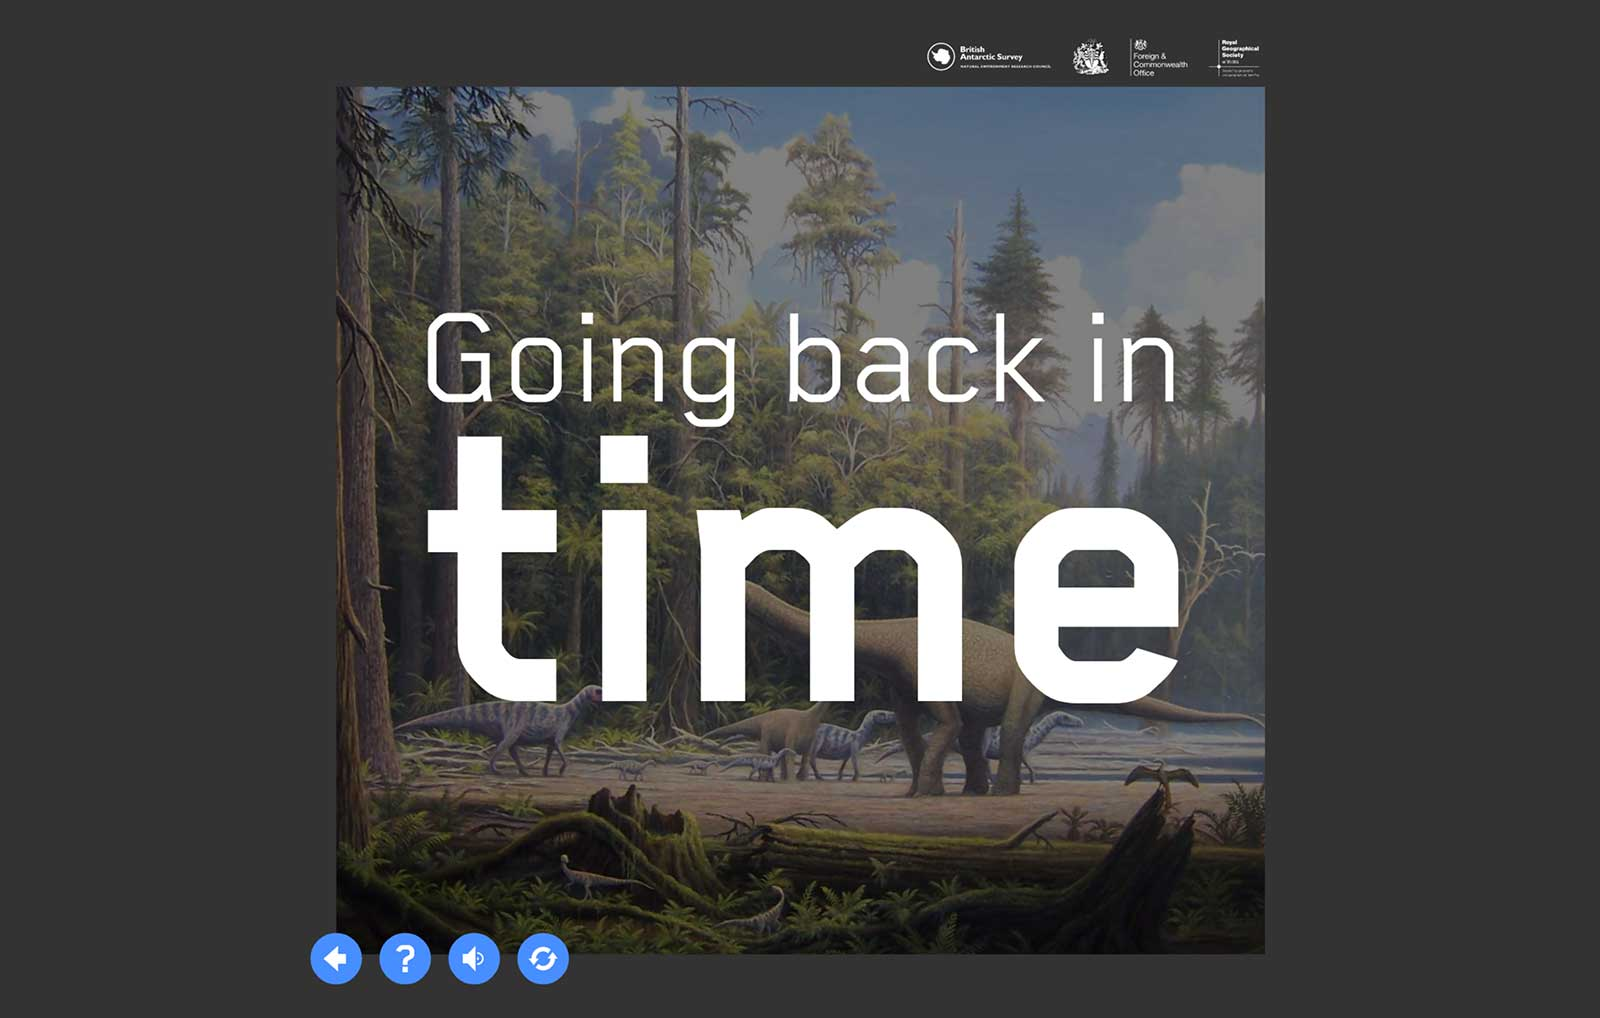 Back in time activity intro screen